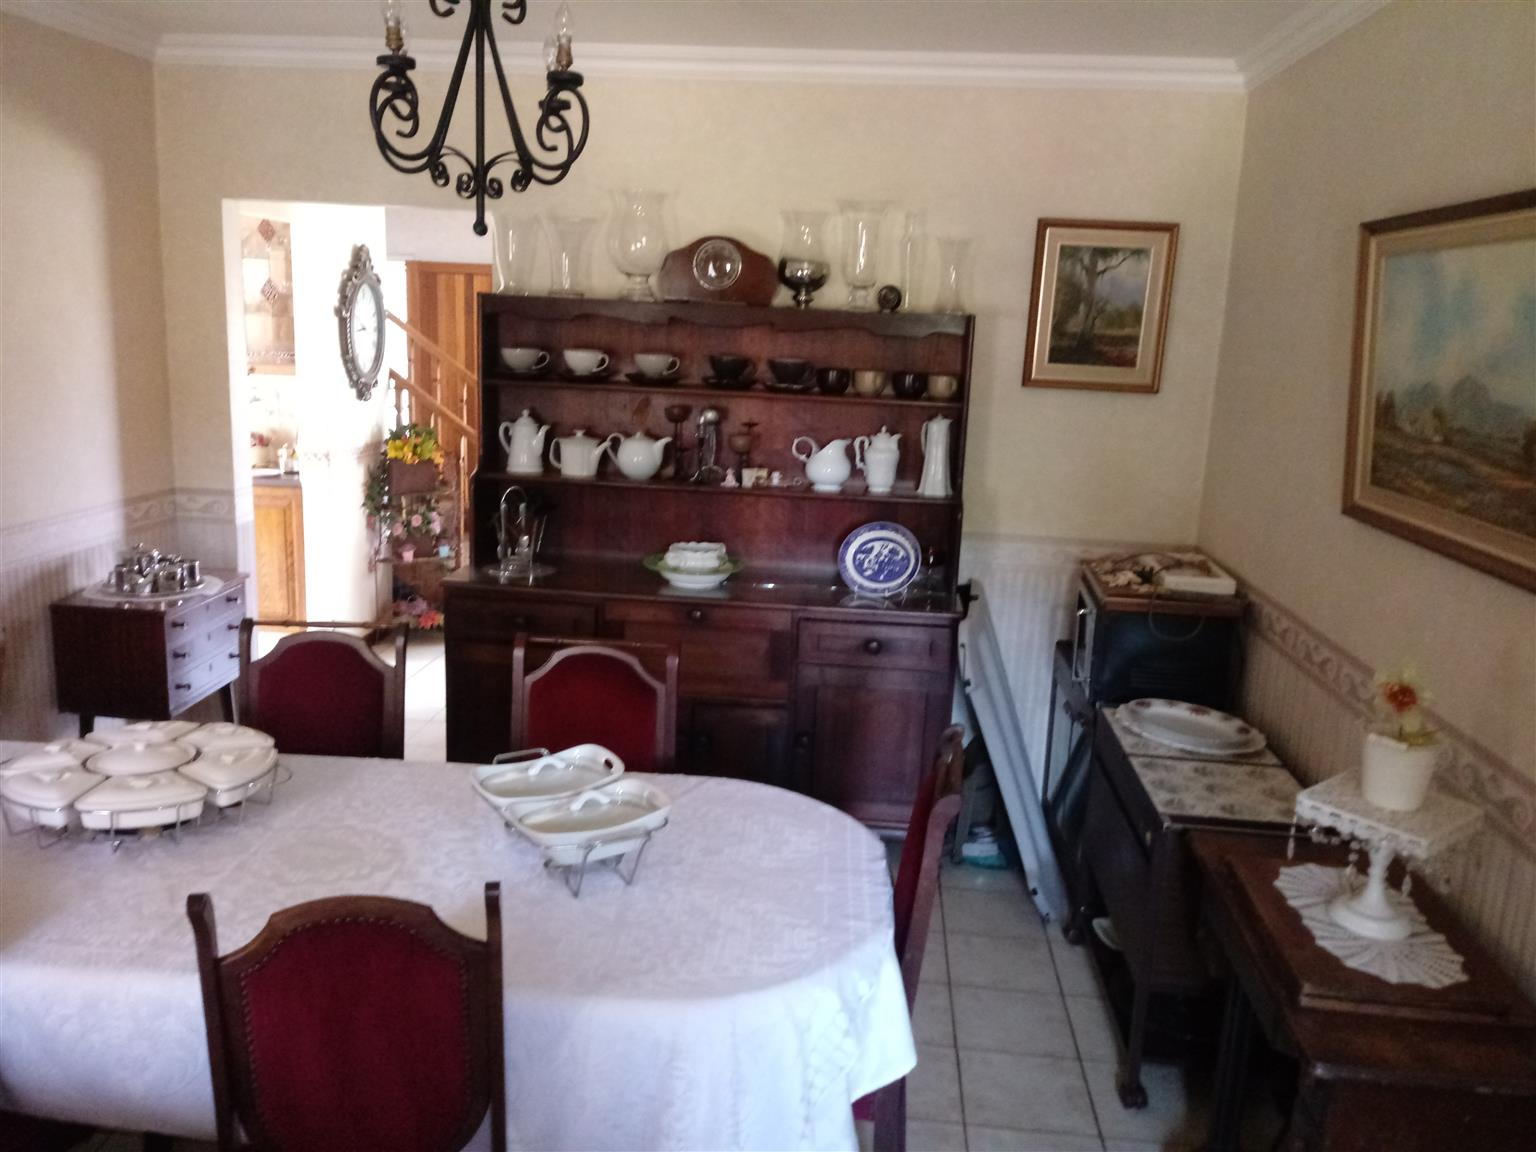 Excellent family home with flat for the inlaws in Benoni